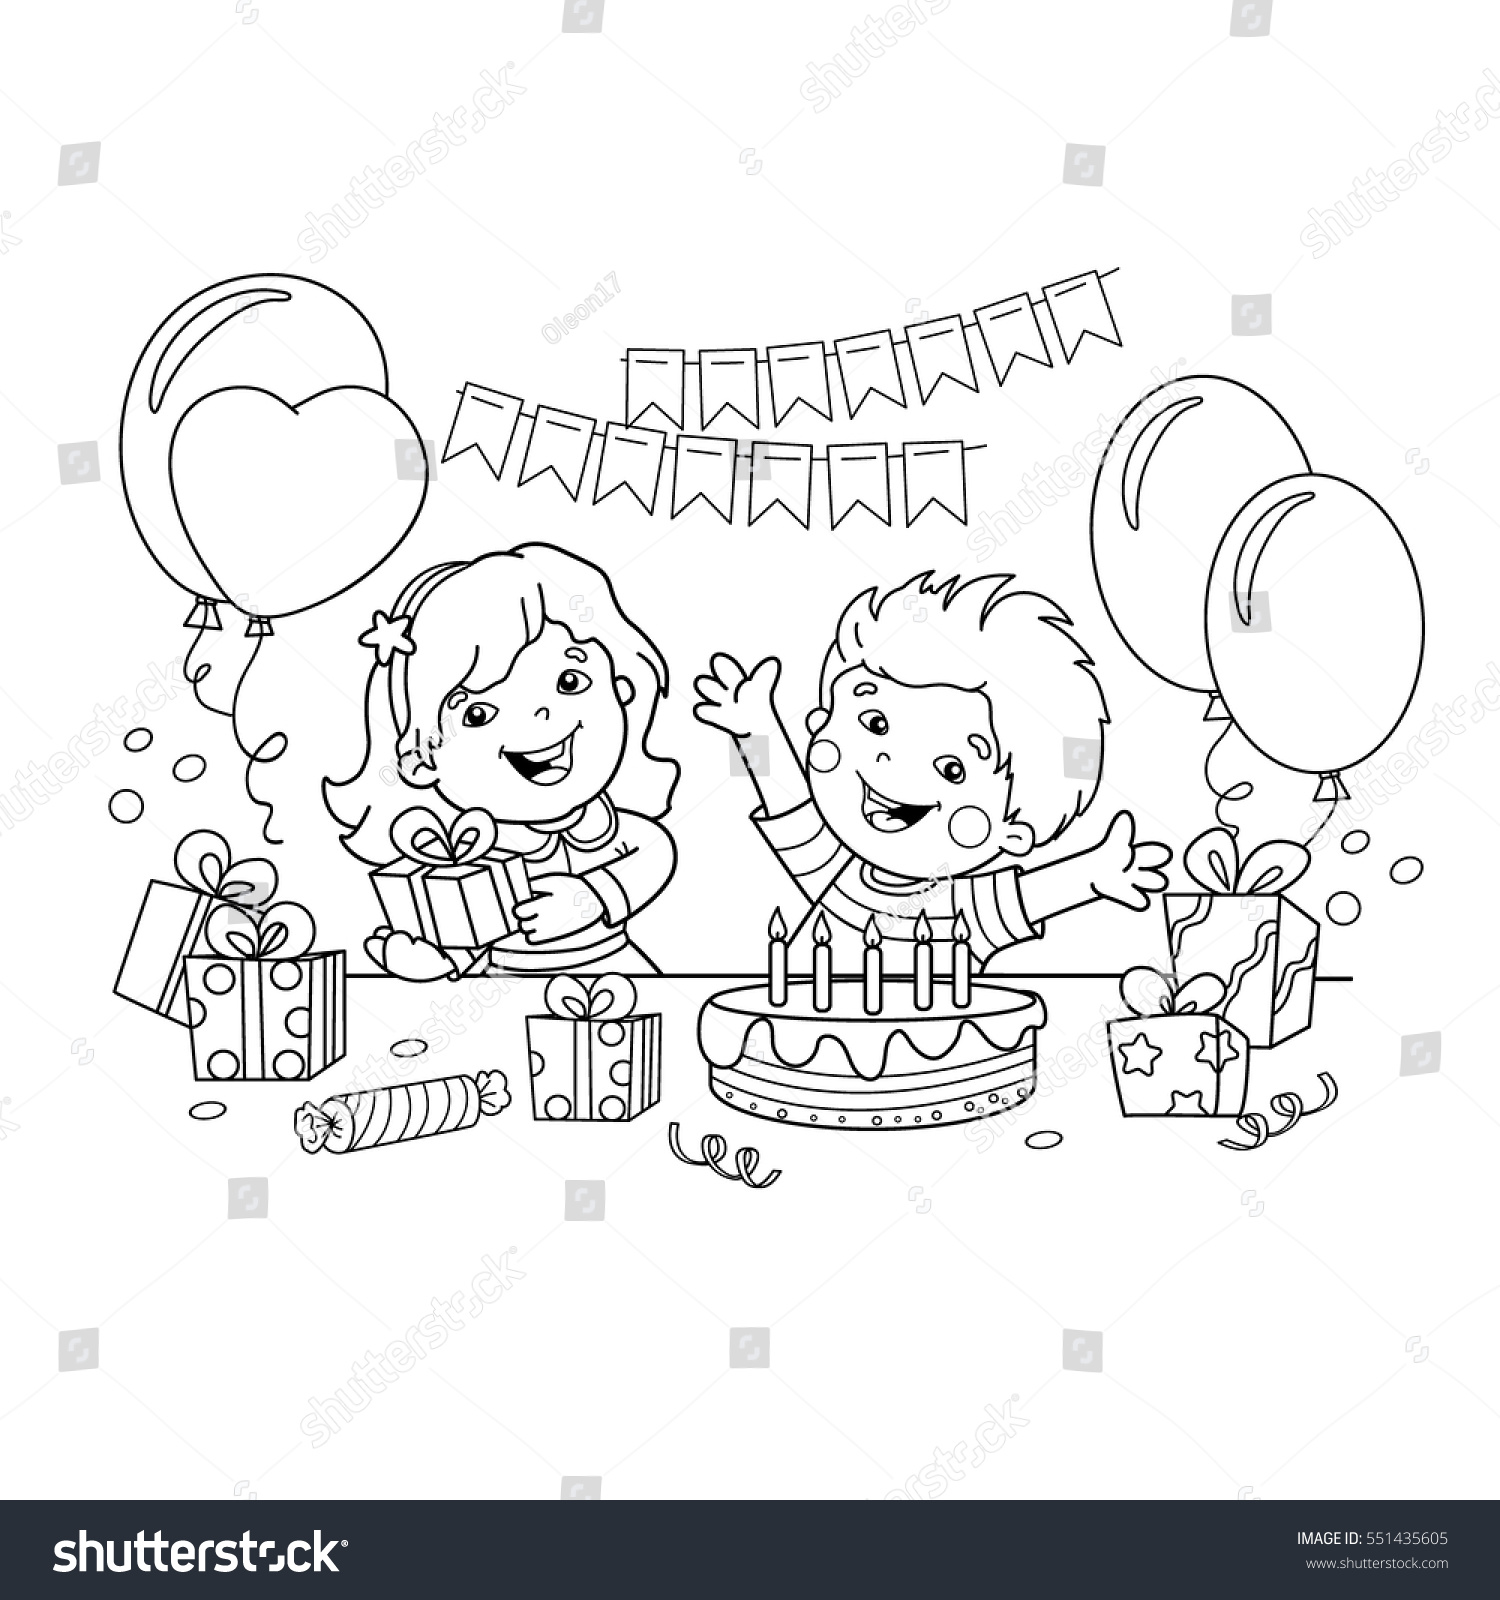 coloring page outline children gifts holiday stock vector